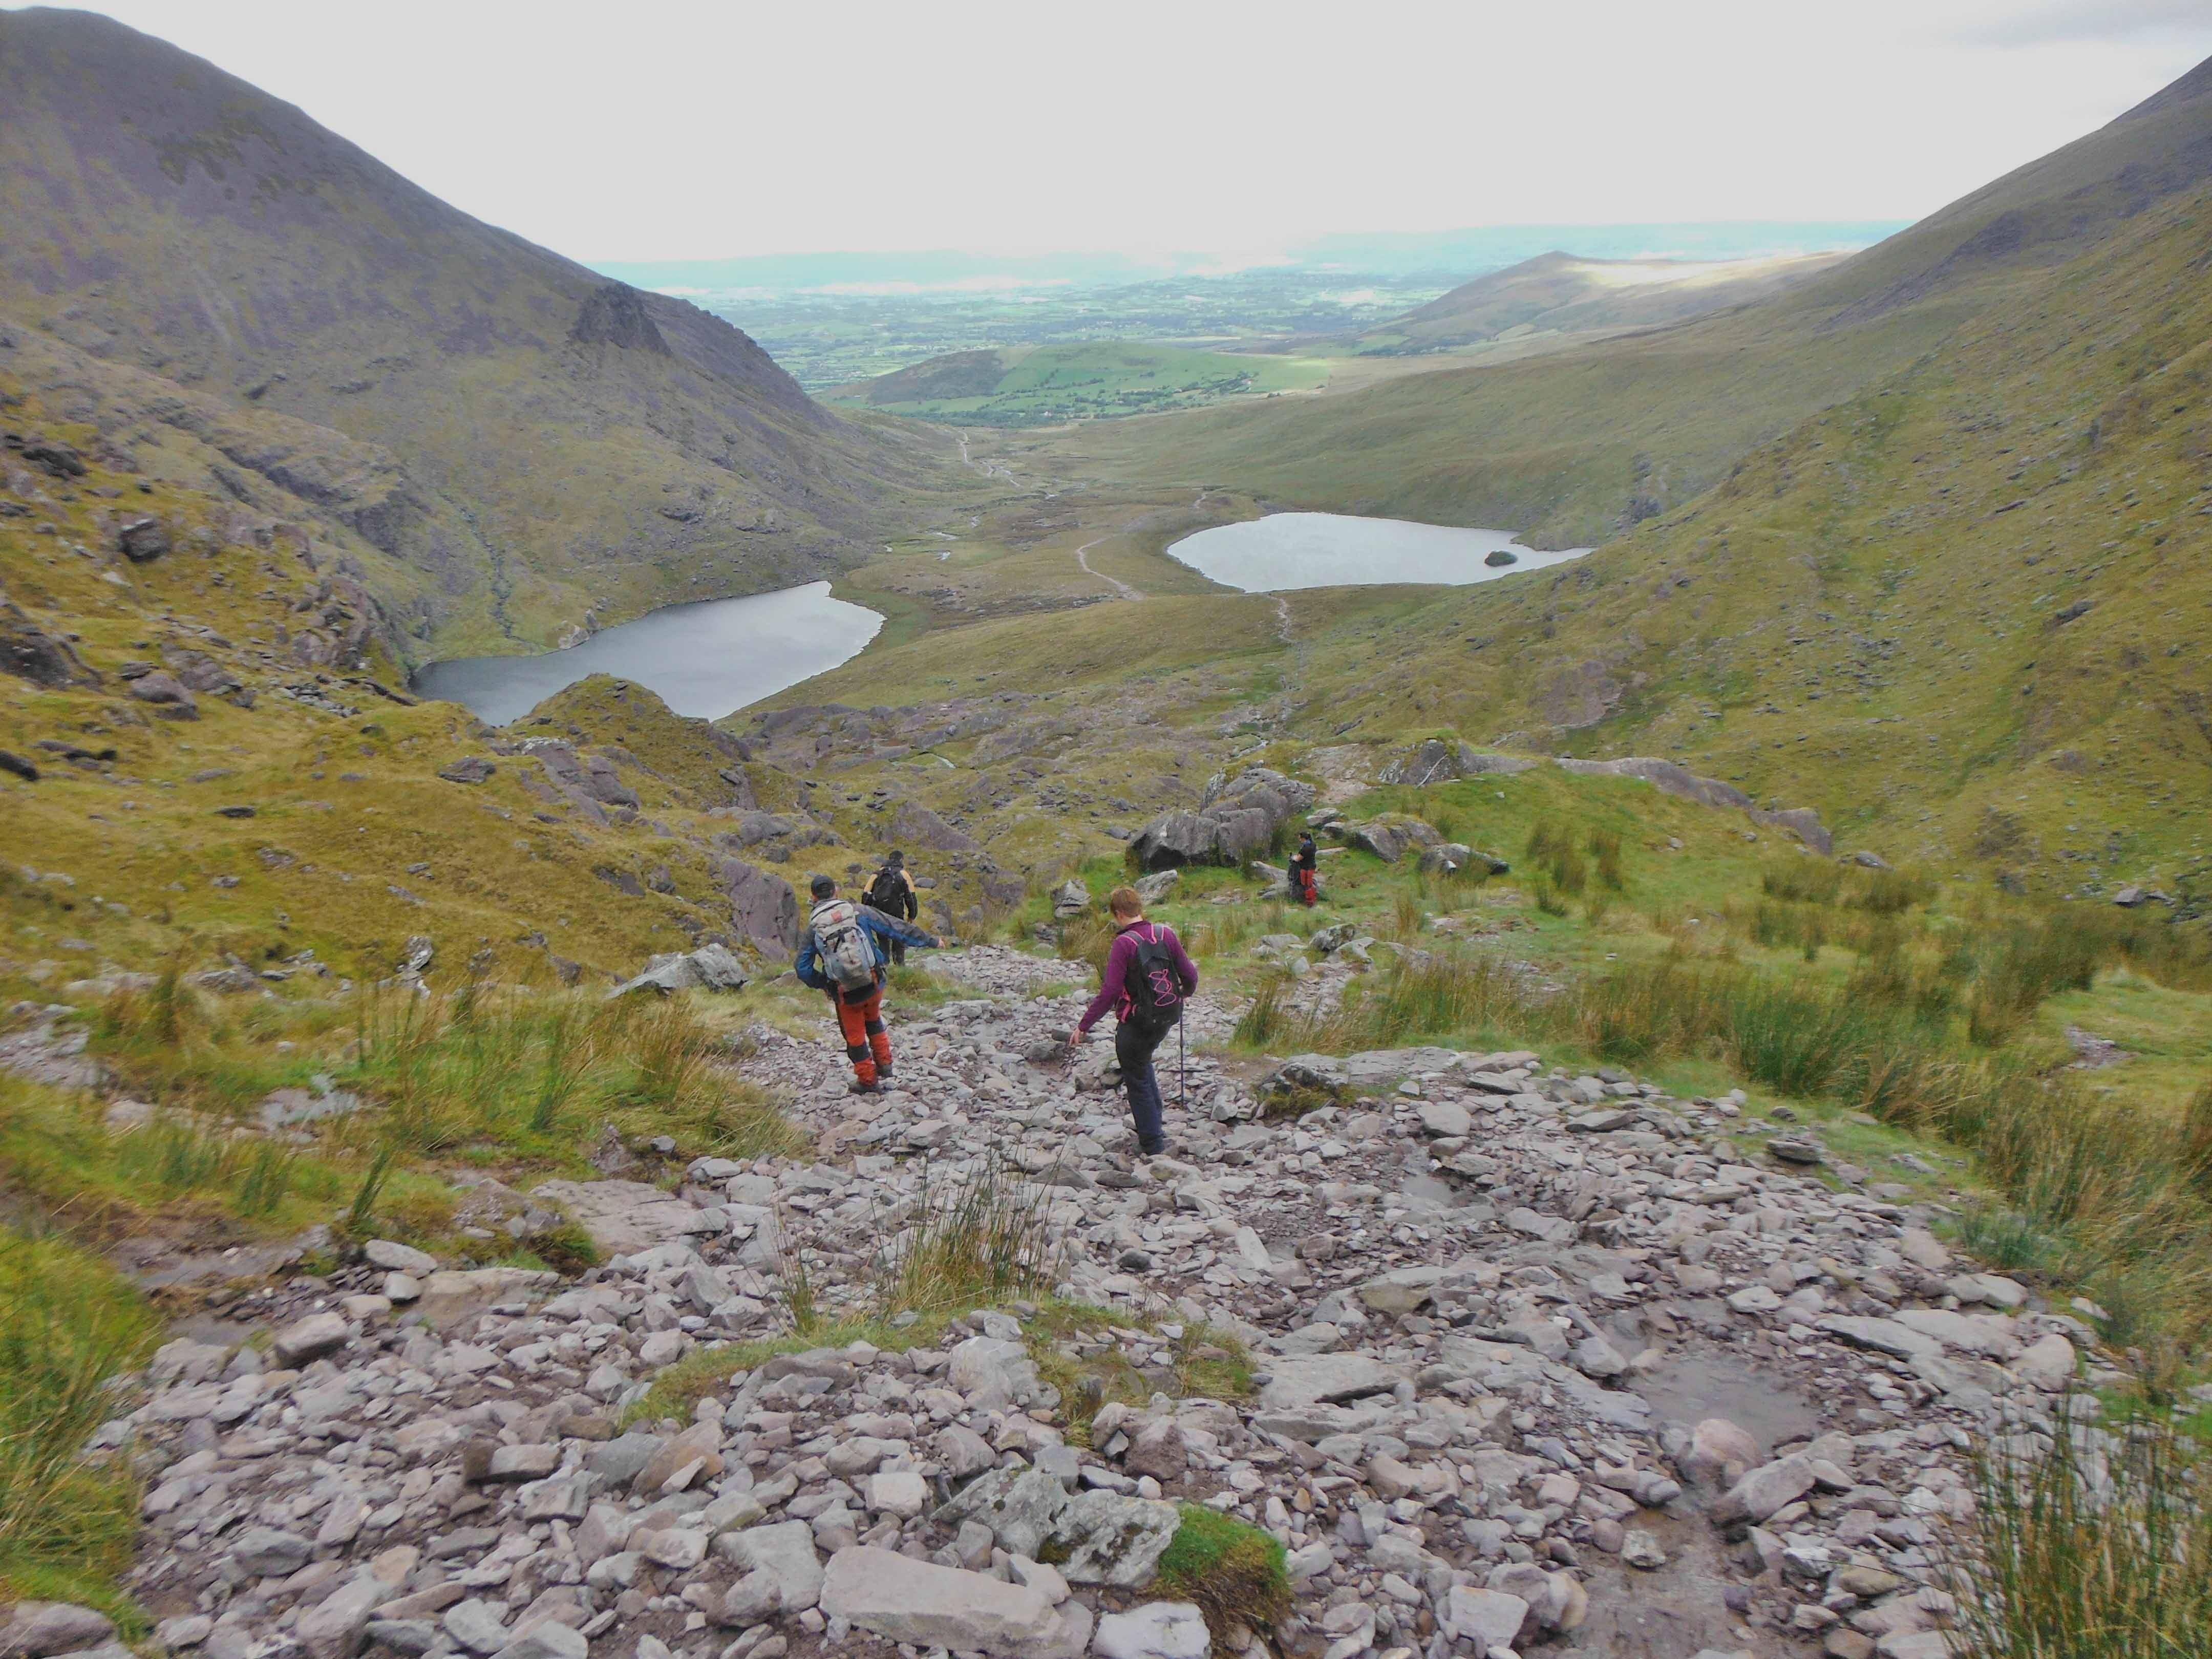 Hag's Glen at foot of Carrauntoohil